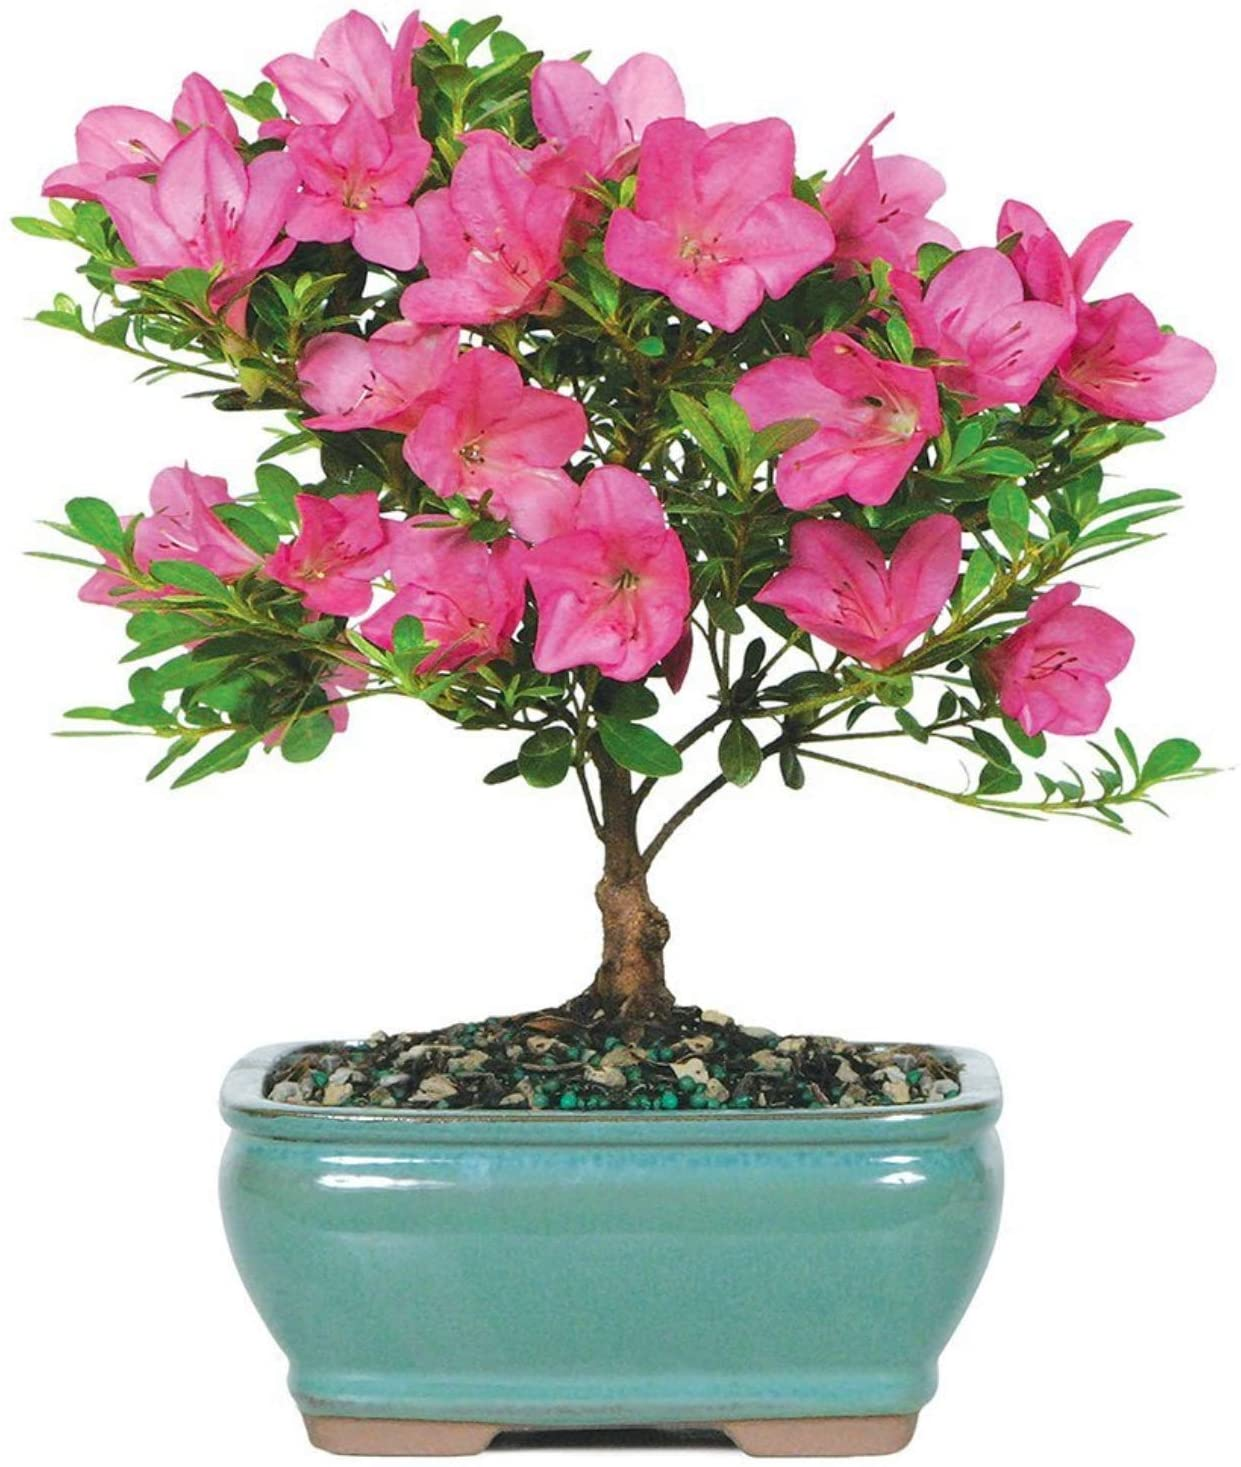 Amazon Com Brussel S Live Satsuki Azalea Outdoor Bonsai Tree 5 Years Old 6 To 8 Tall With Decorative Container Garden Outdoor